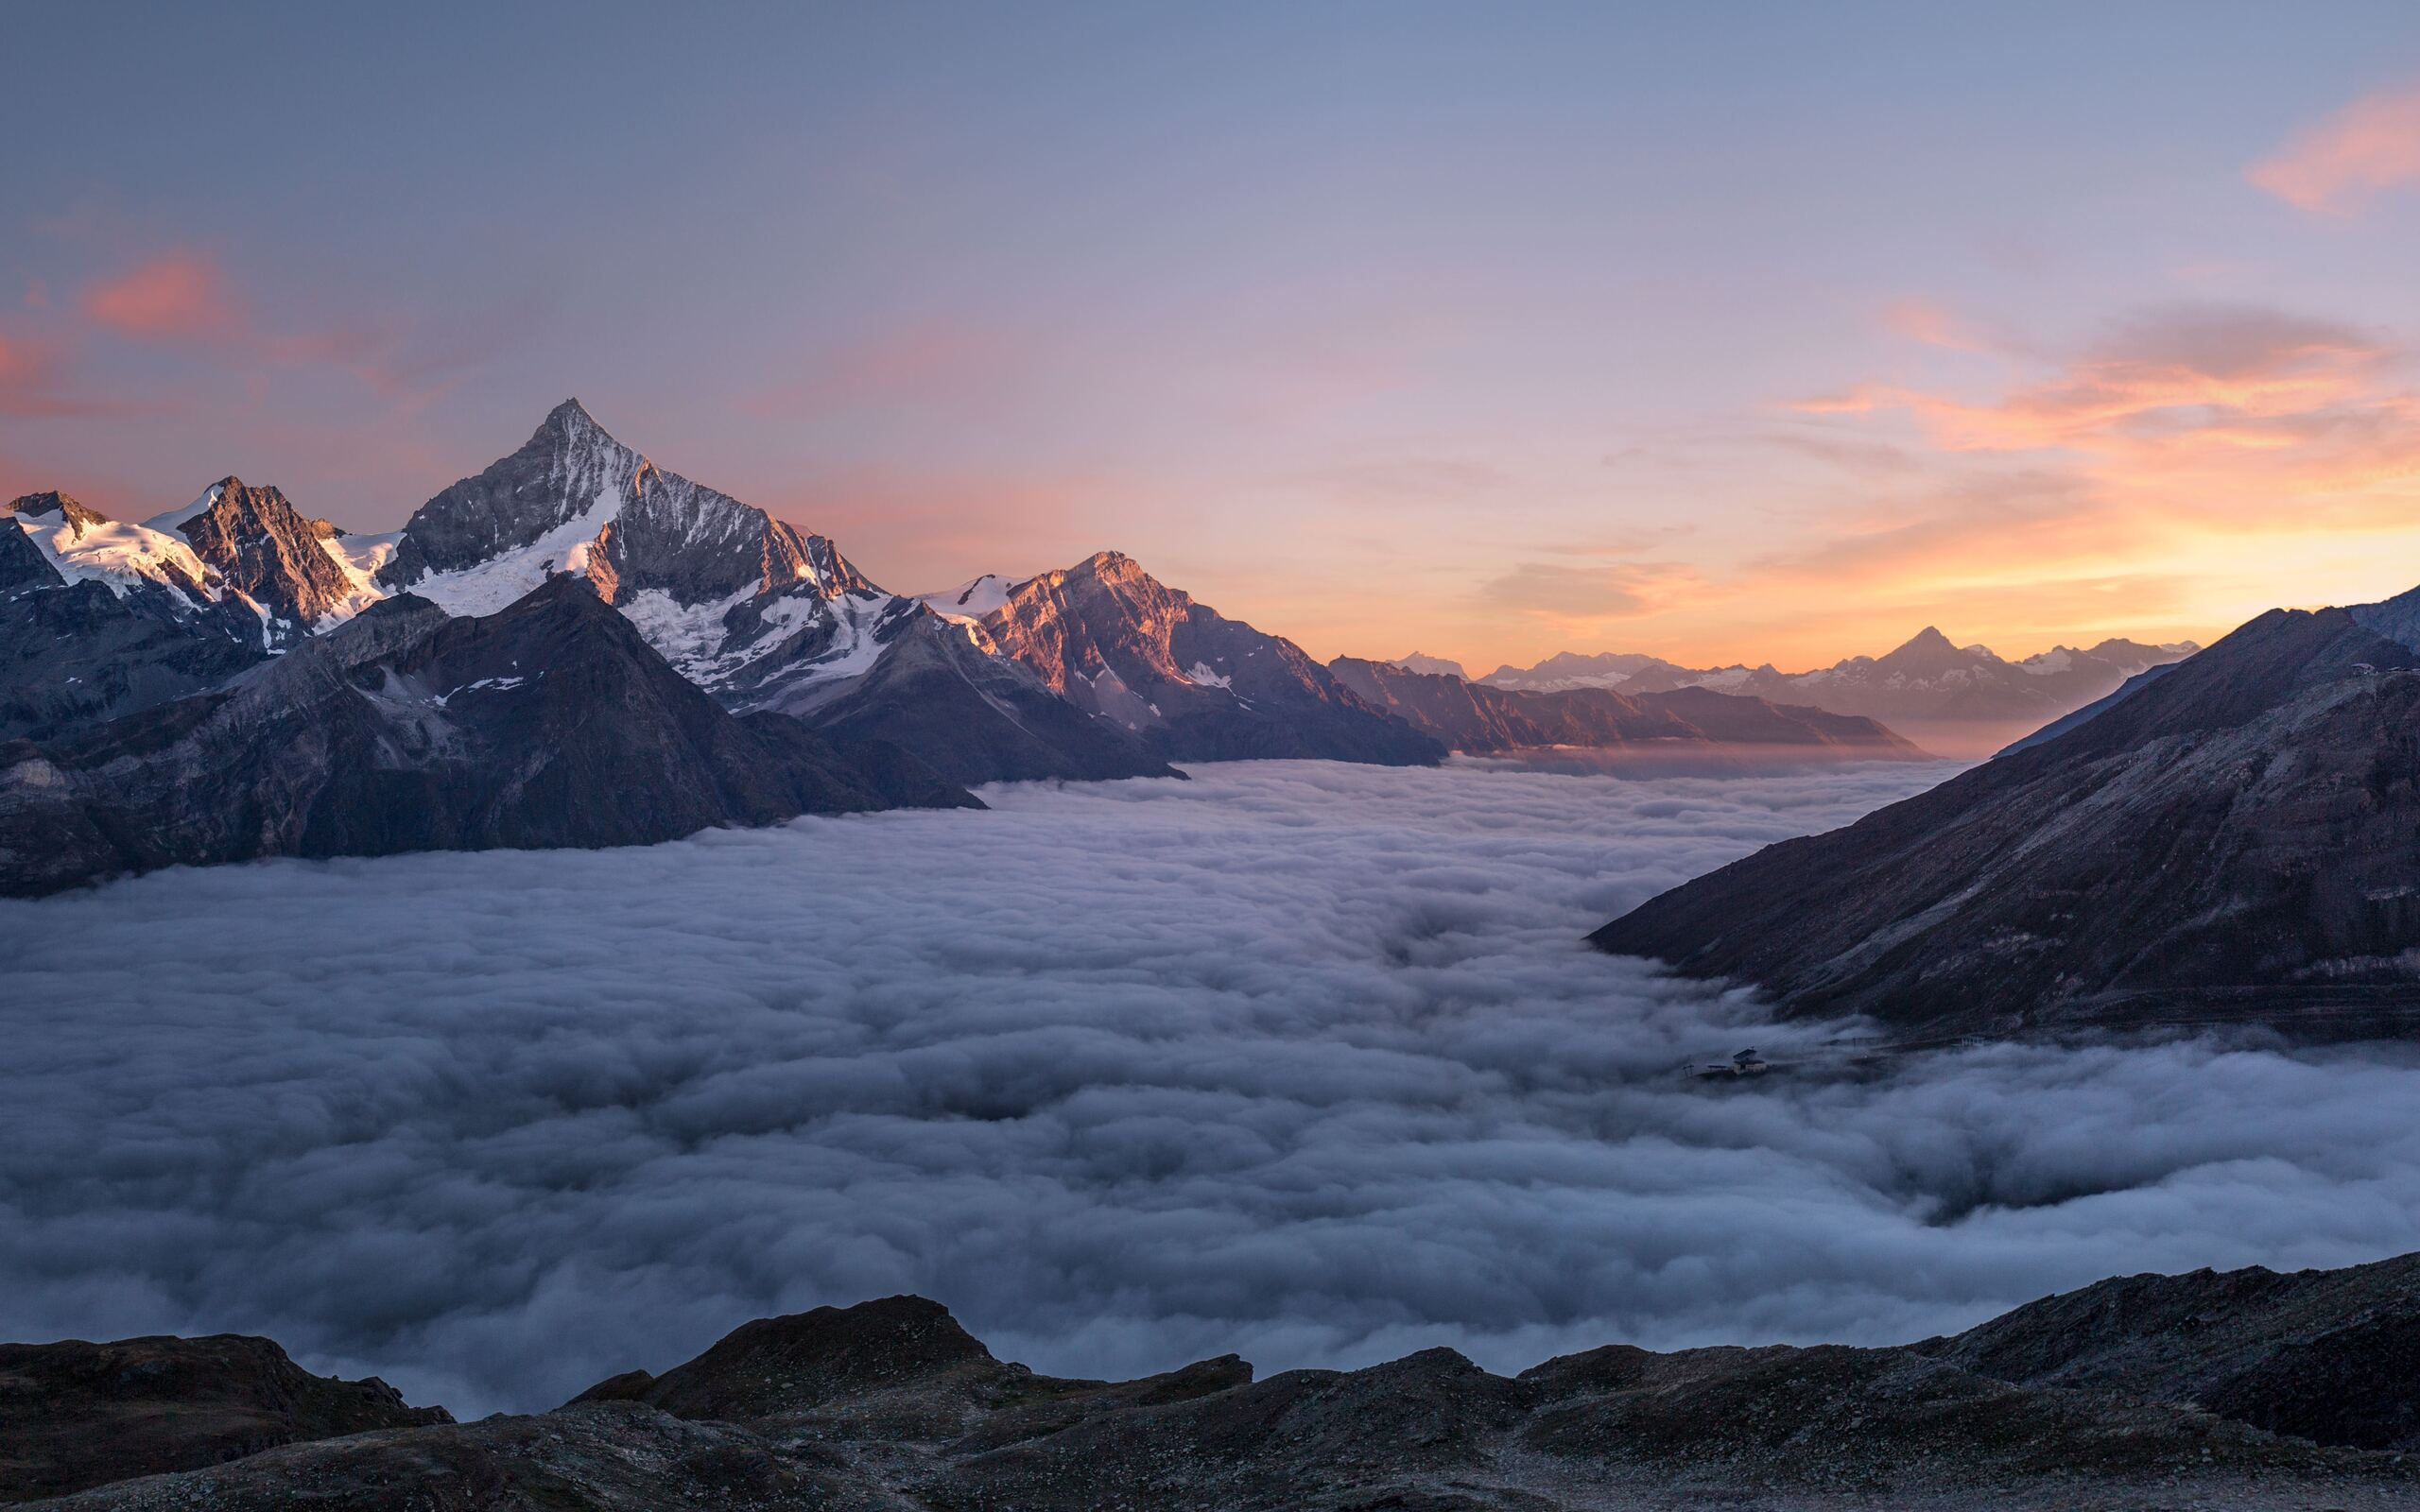 sky-of-clouds-glow-cool-light-mountains-5k-l0.jpg